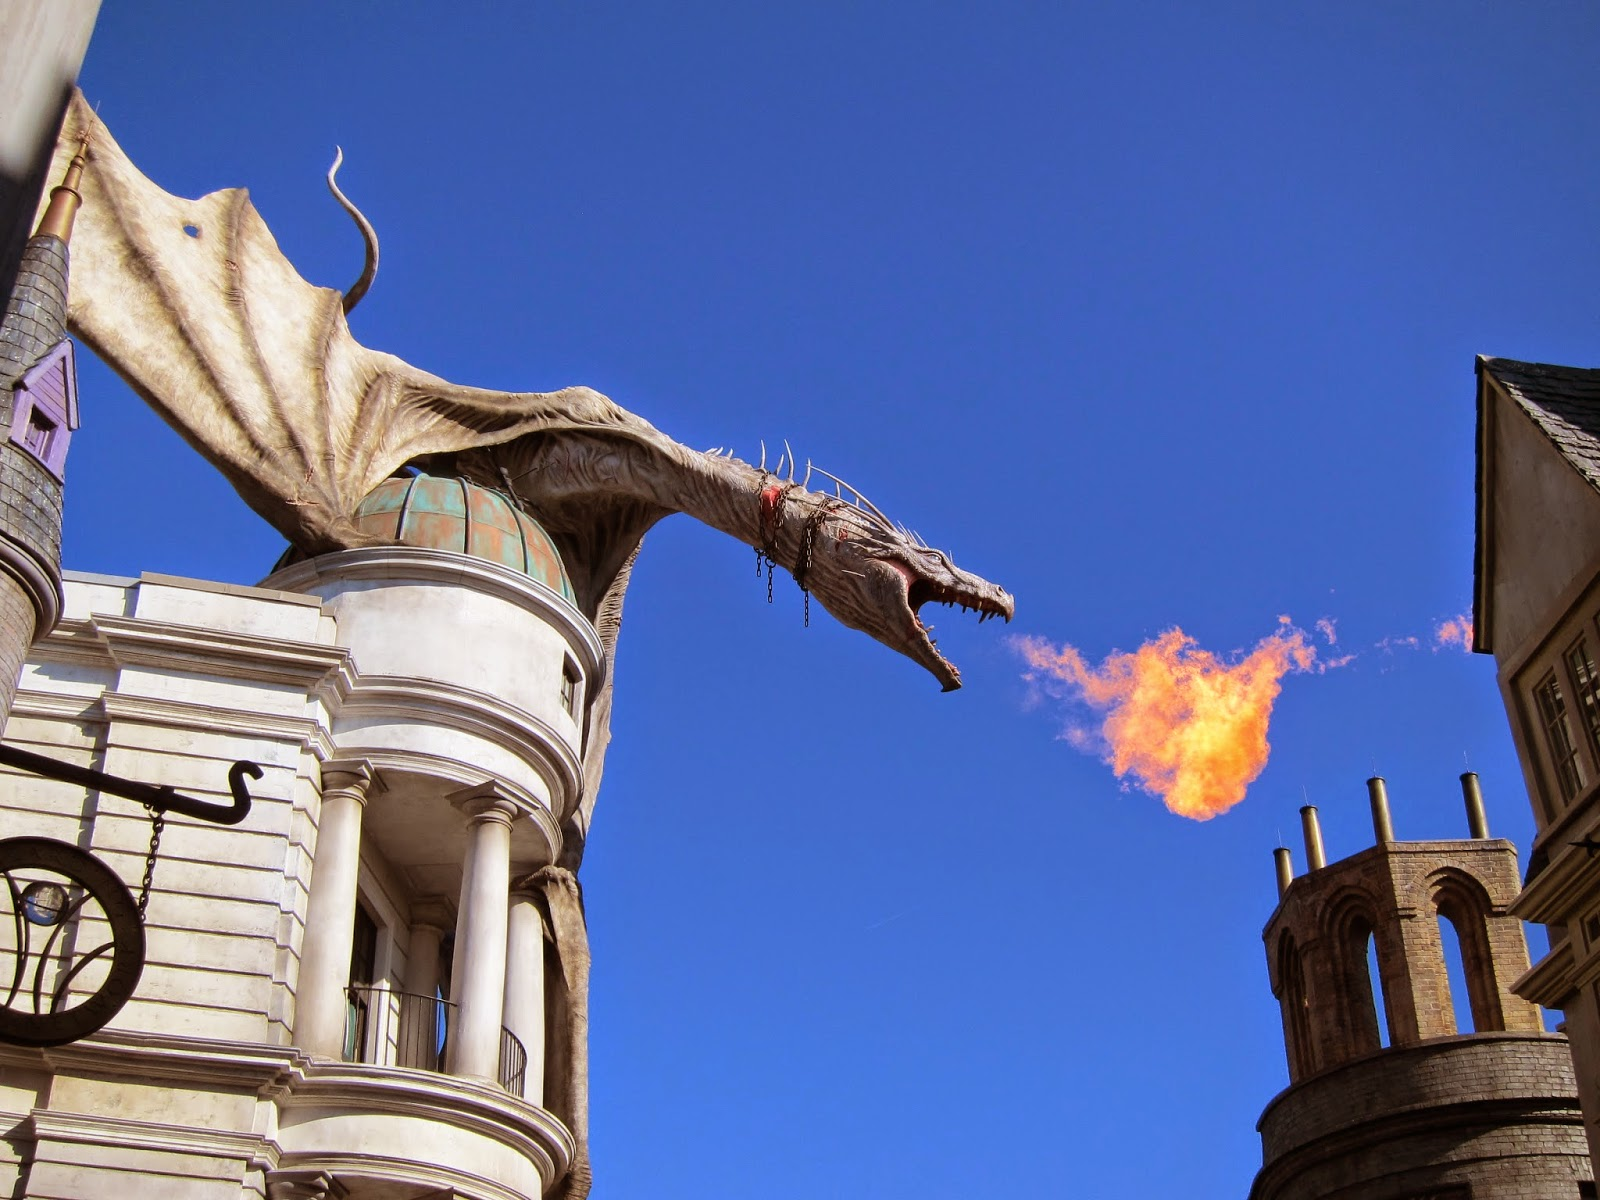 The dragon on top of Gringotts breathing fire!